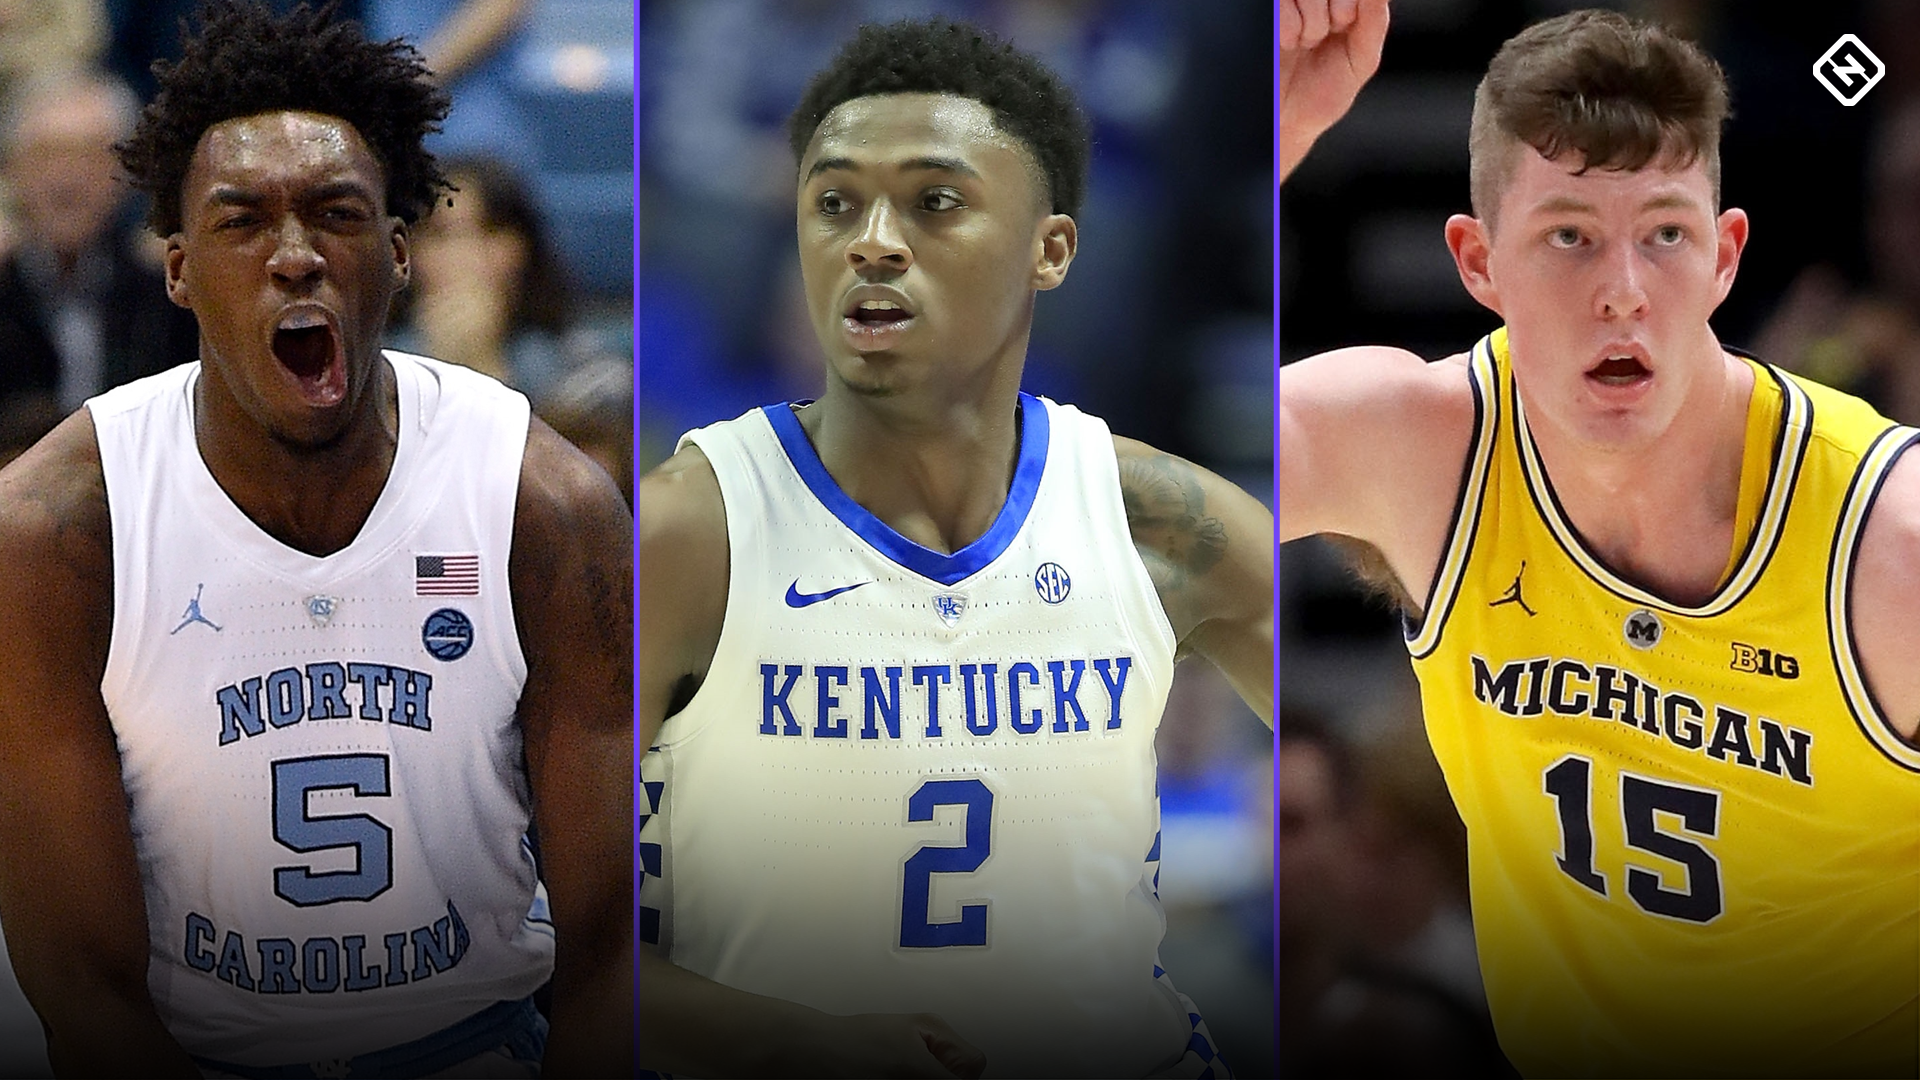 March Madness 2019: 12 unheralded players who could impact the NCAA Tournament